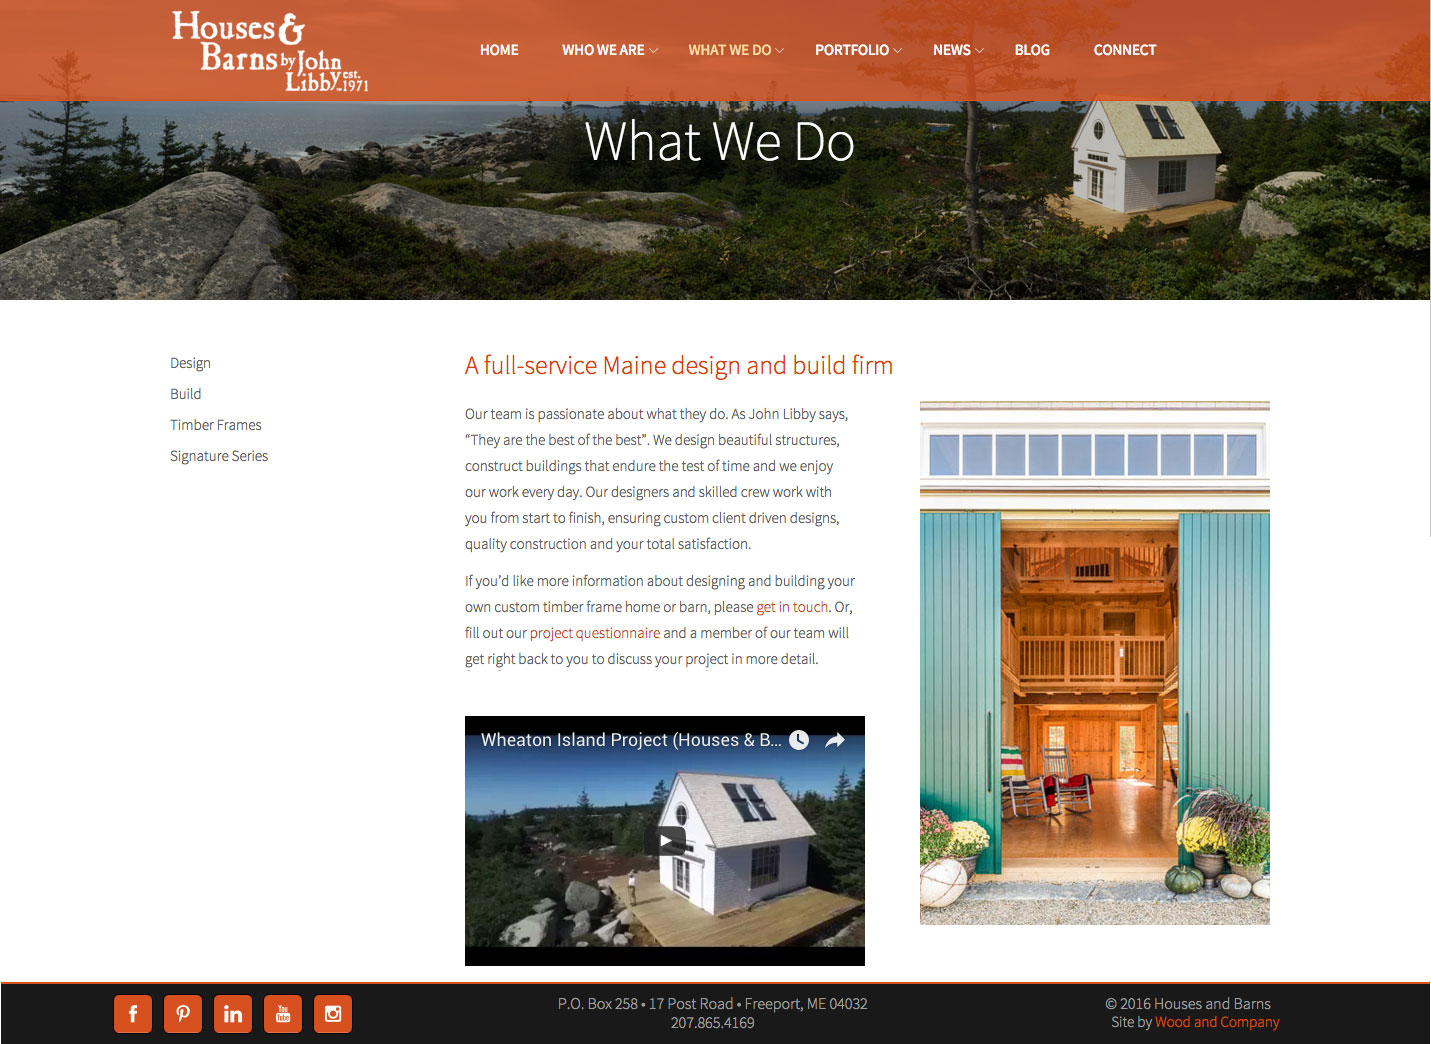 Houses & Barns website what we do